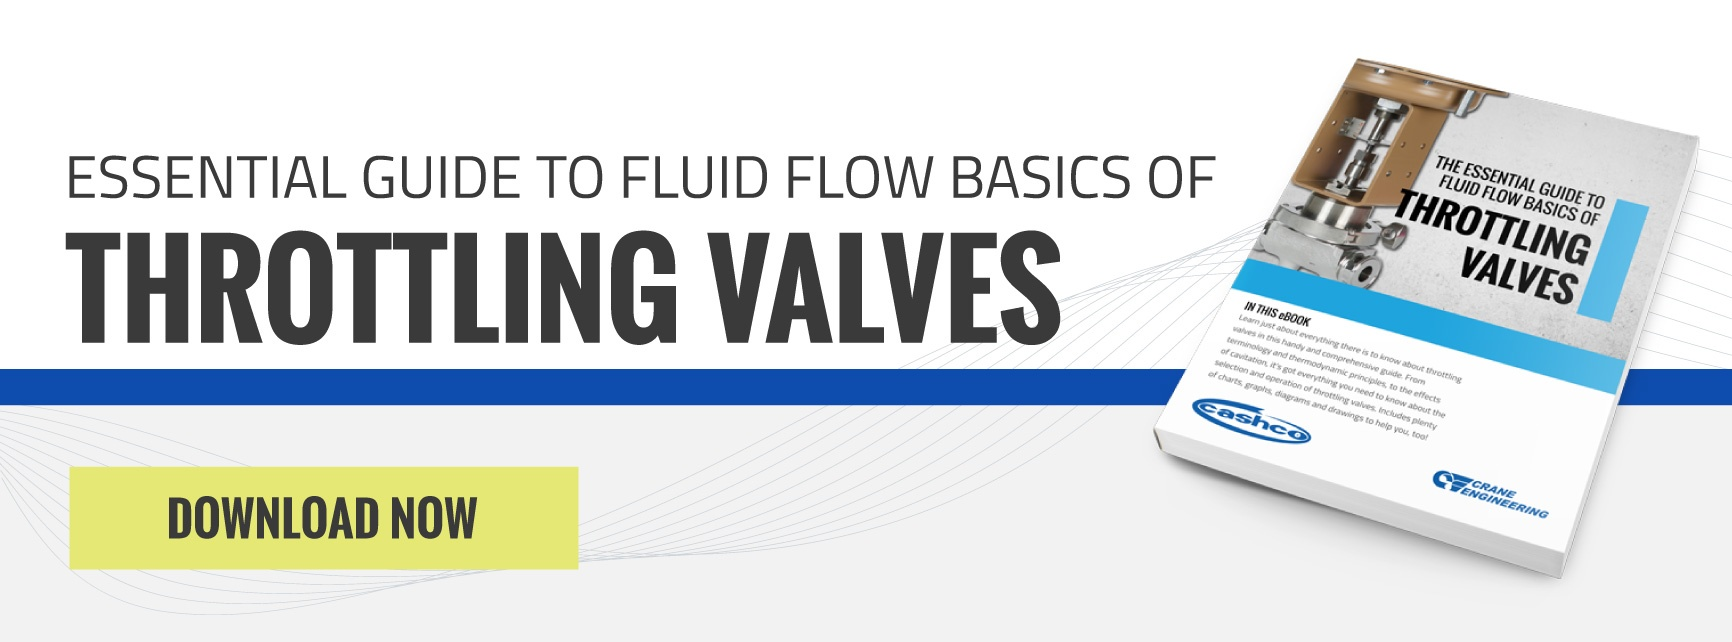 Download The Essential Guide To Fluid Flow Basics of Throttling Valves